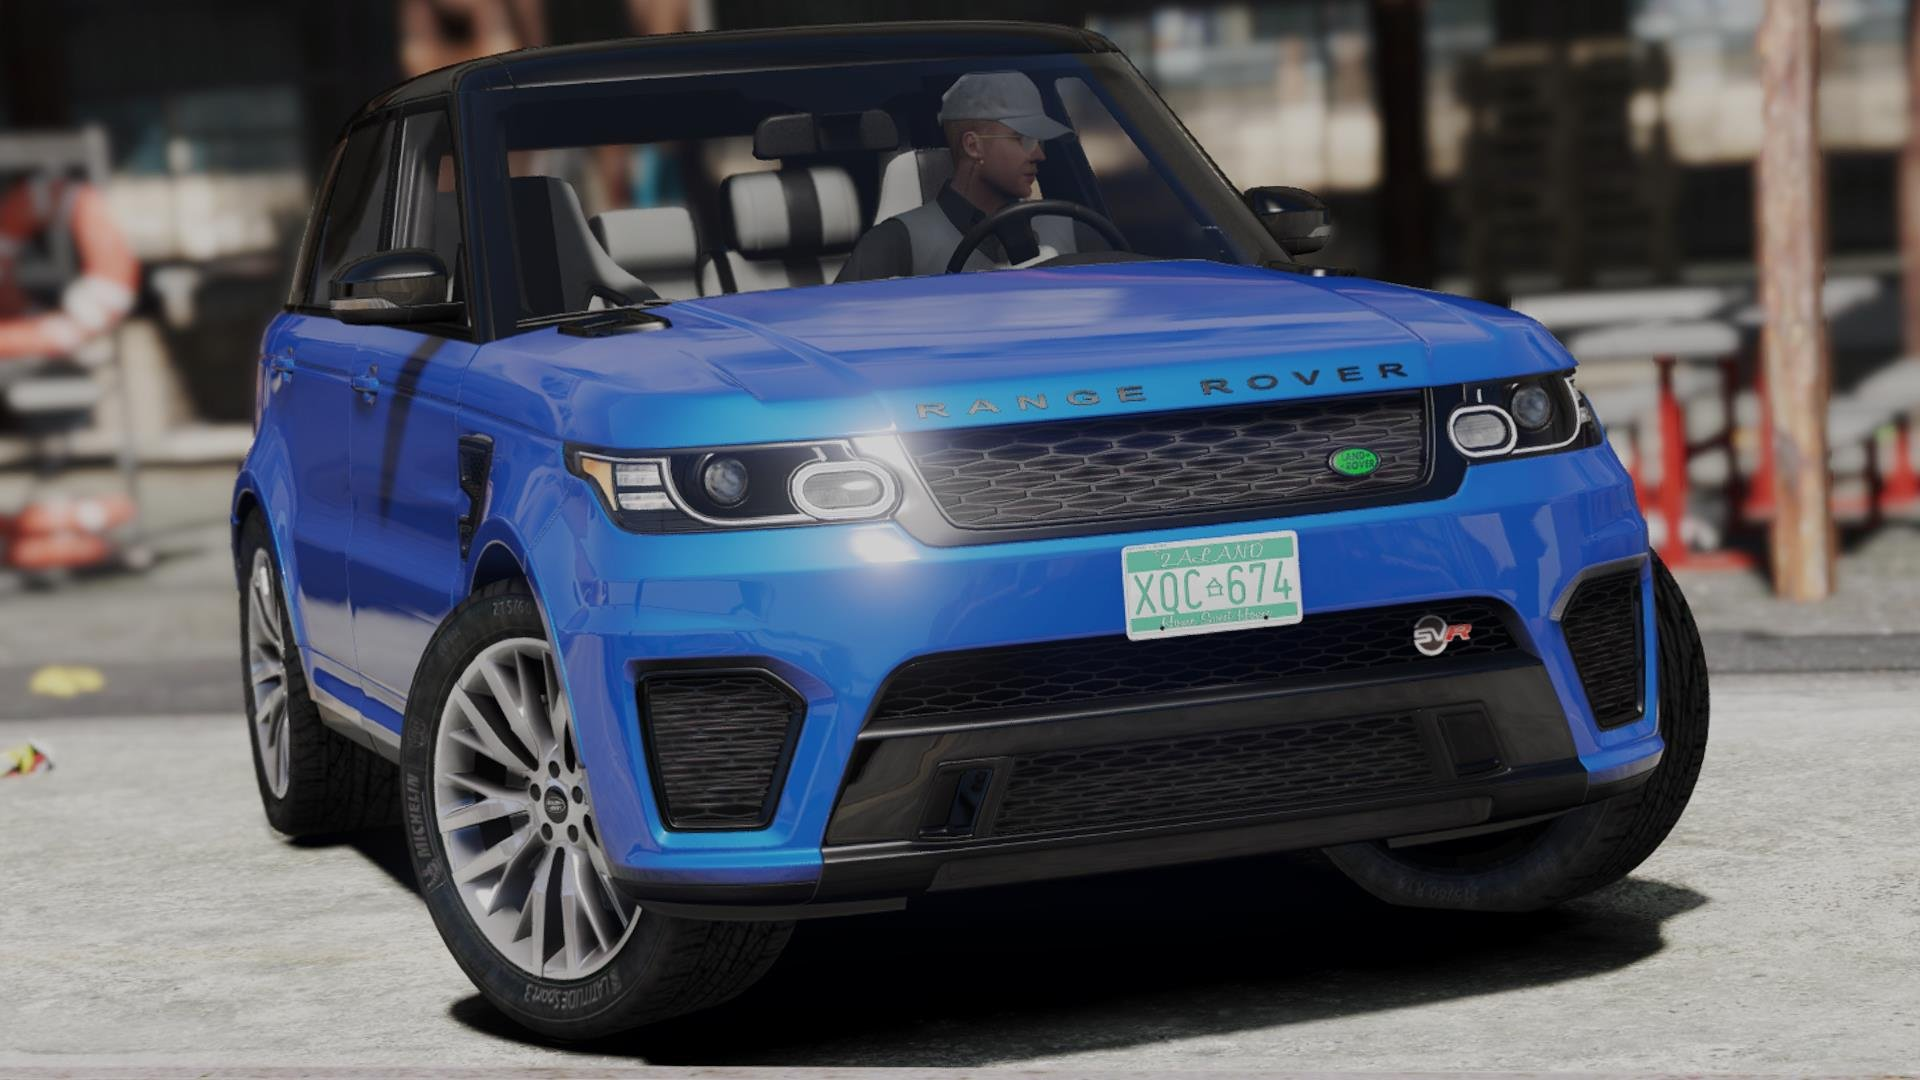 2014 range rover sport svr 5 0 v8 add on replace gta5. Black Bedroom Furniture Sets. Home Design Ideas